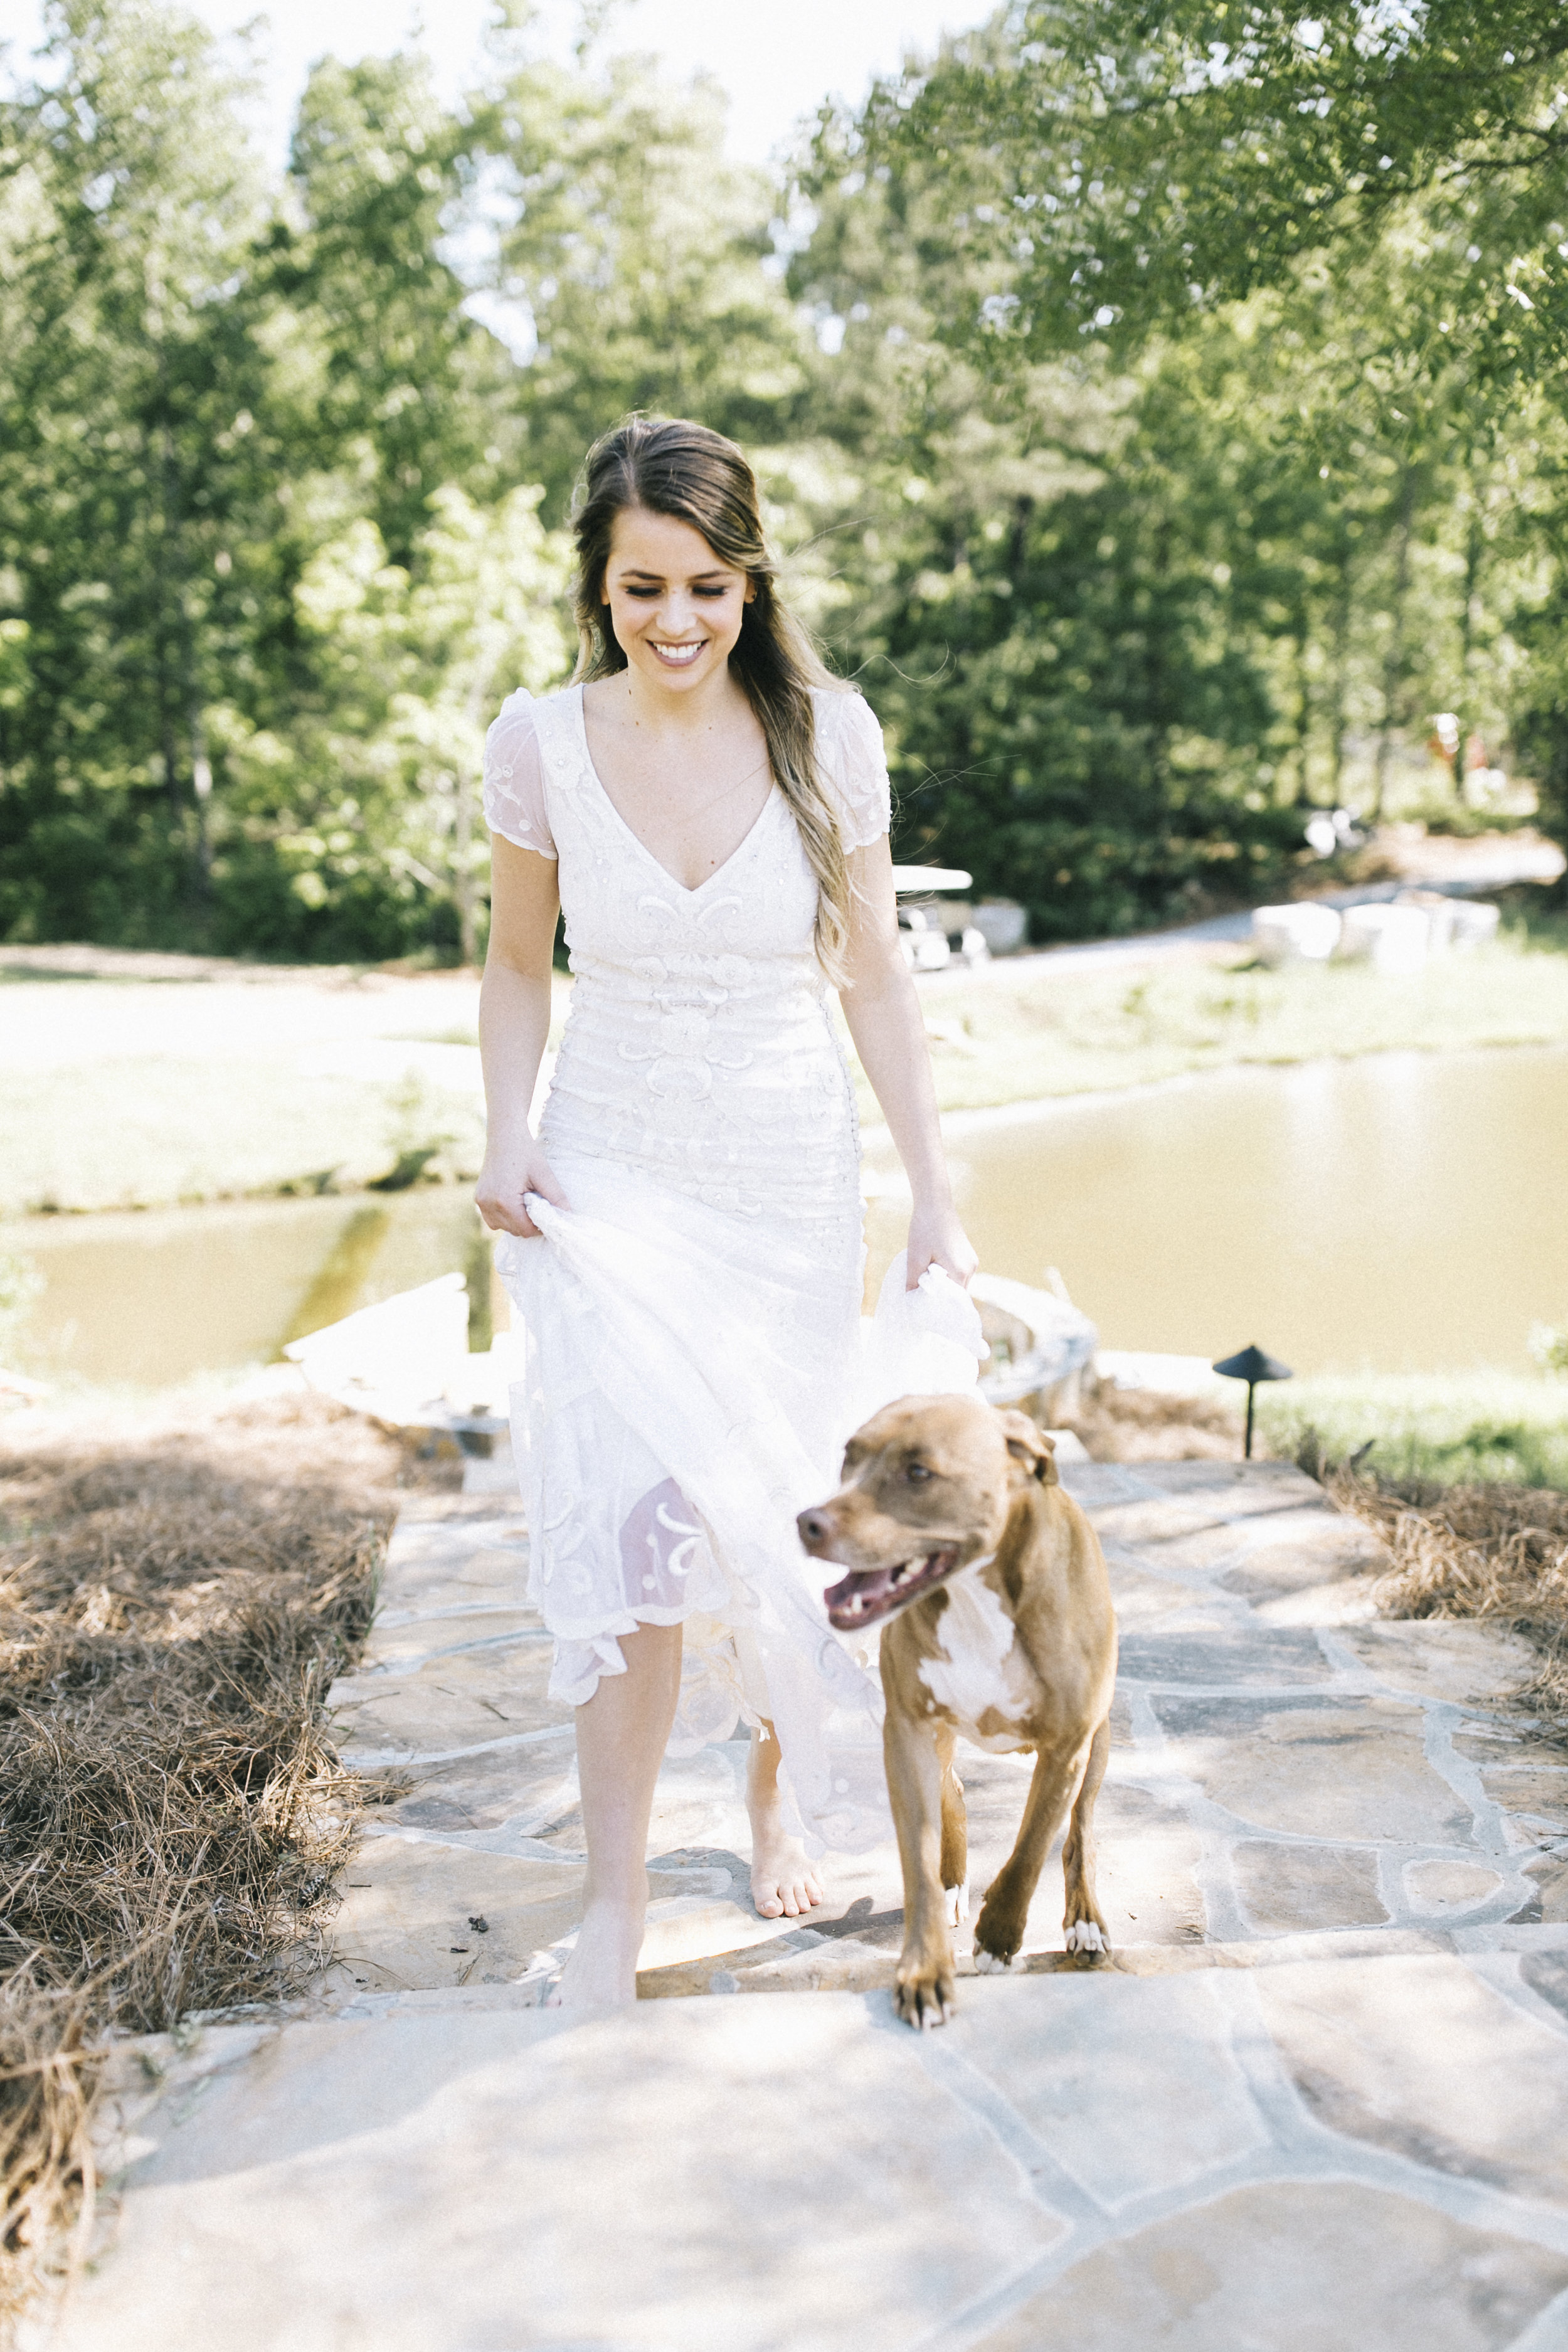 white wedding dress dog escort